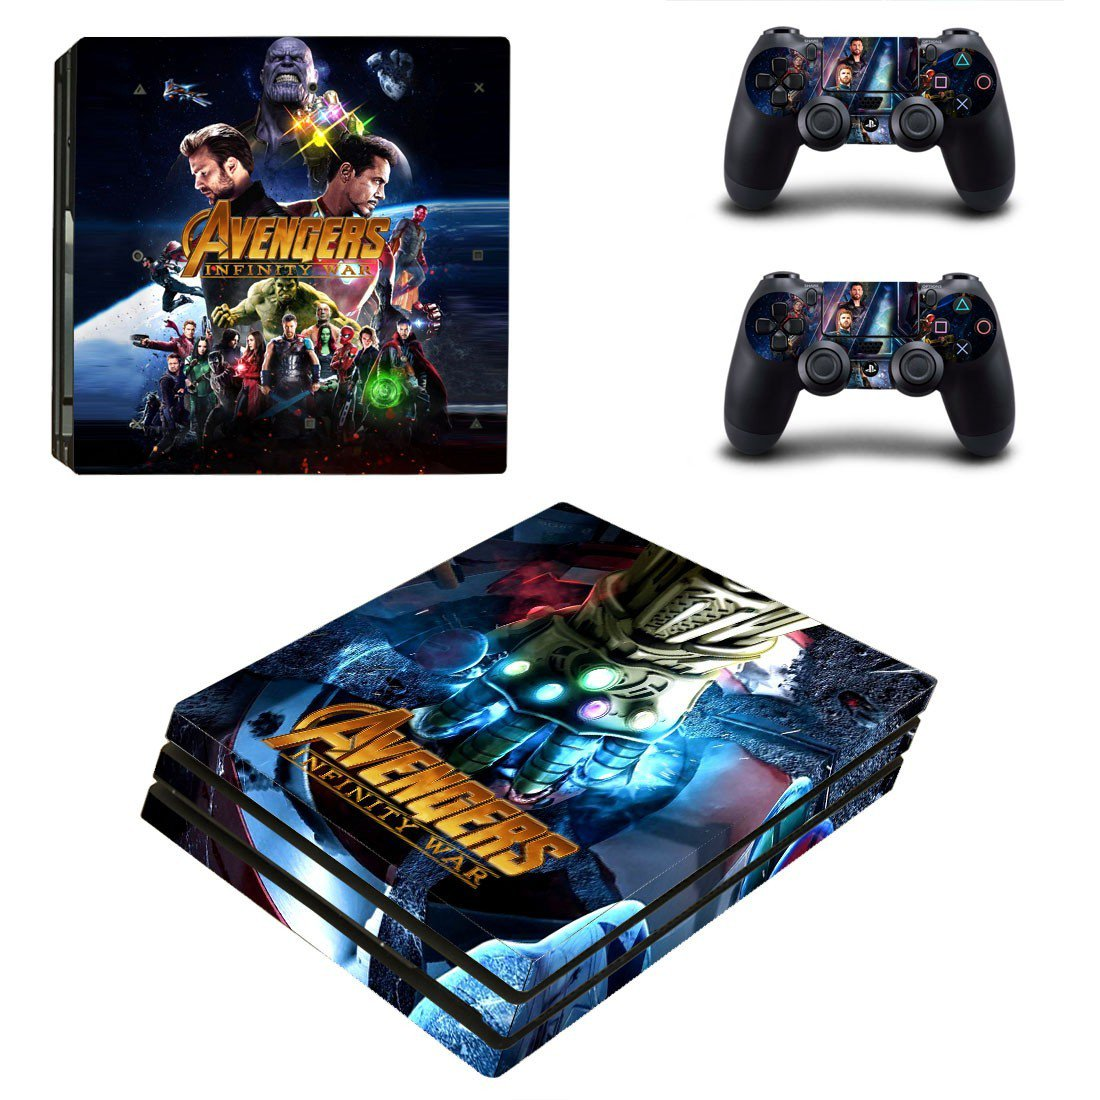 Avengers infinity war ps4 pro skin decal for console and controllers